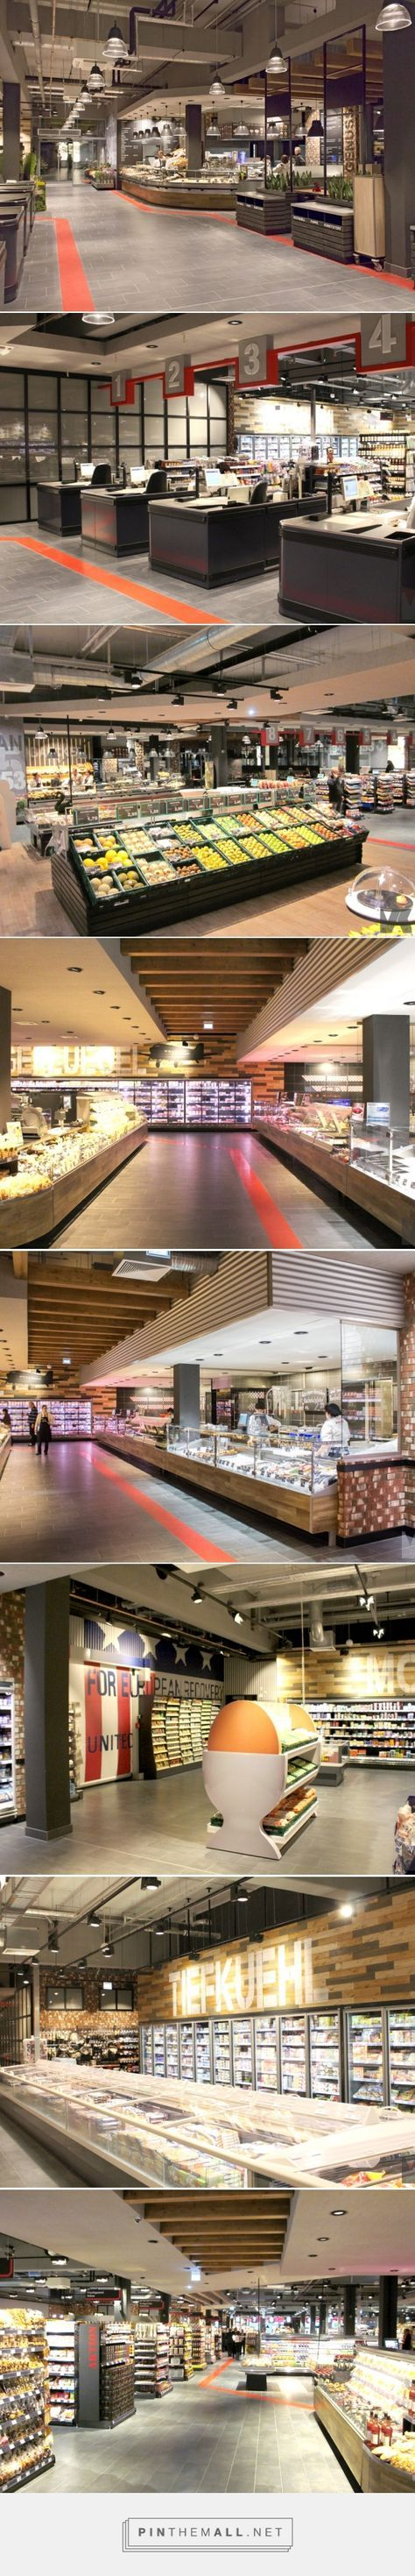 Grocery store, Berlin | Kinzel Architecture / Edeka Reichelt - created via http://pinthemall.net